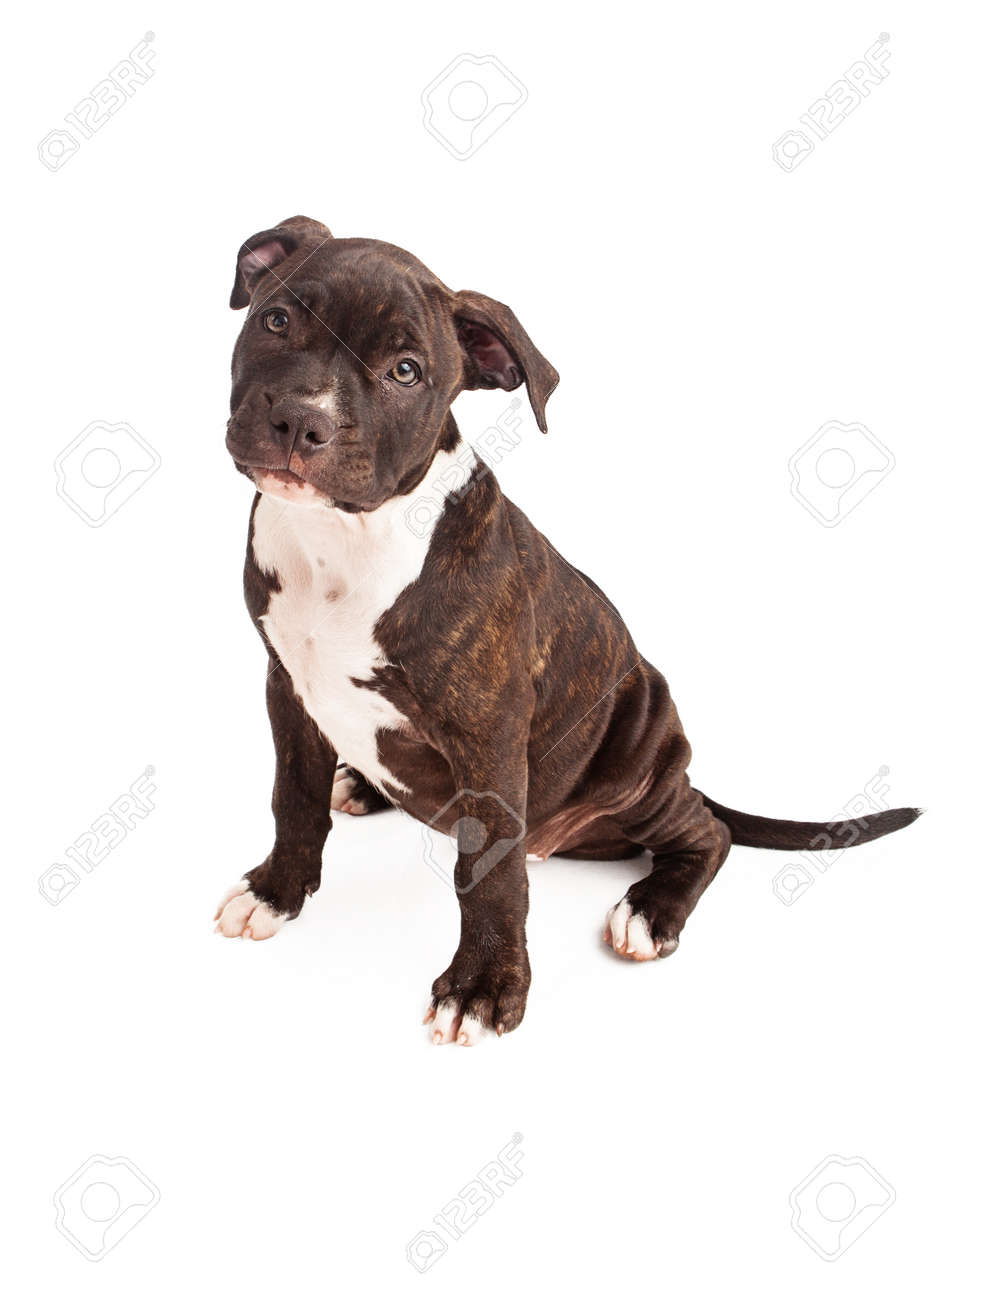 6d15c6385 A cute ten week old black and white bridle Pit Bull puppy sitting against a  white